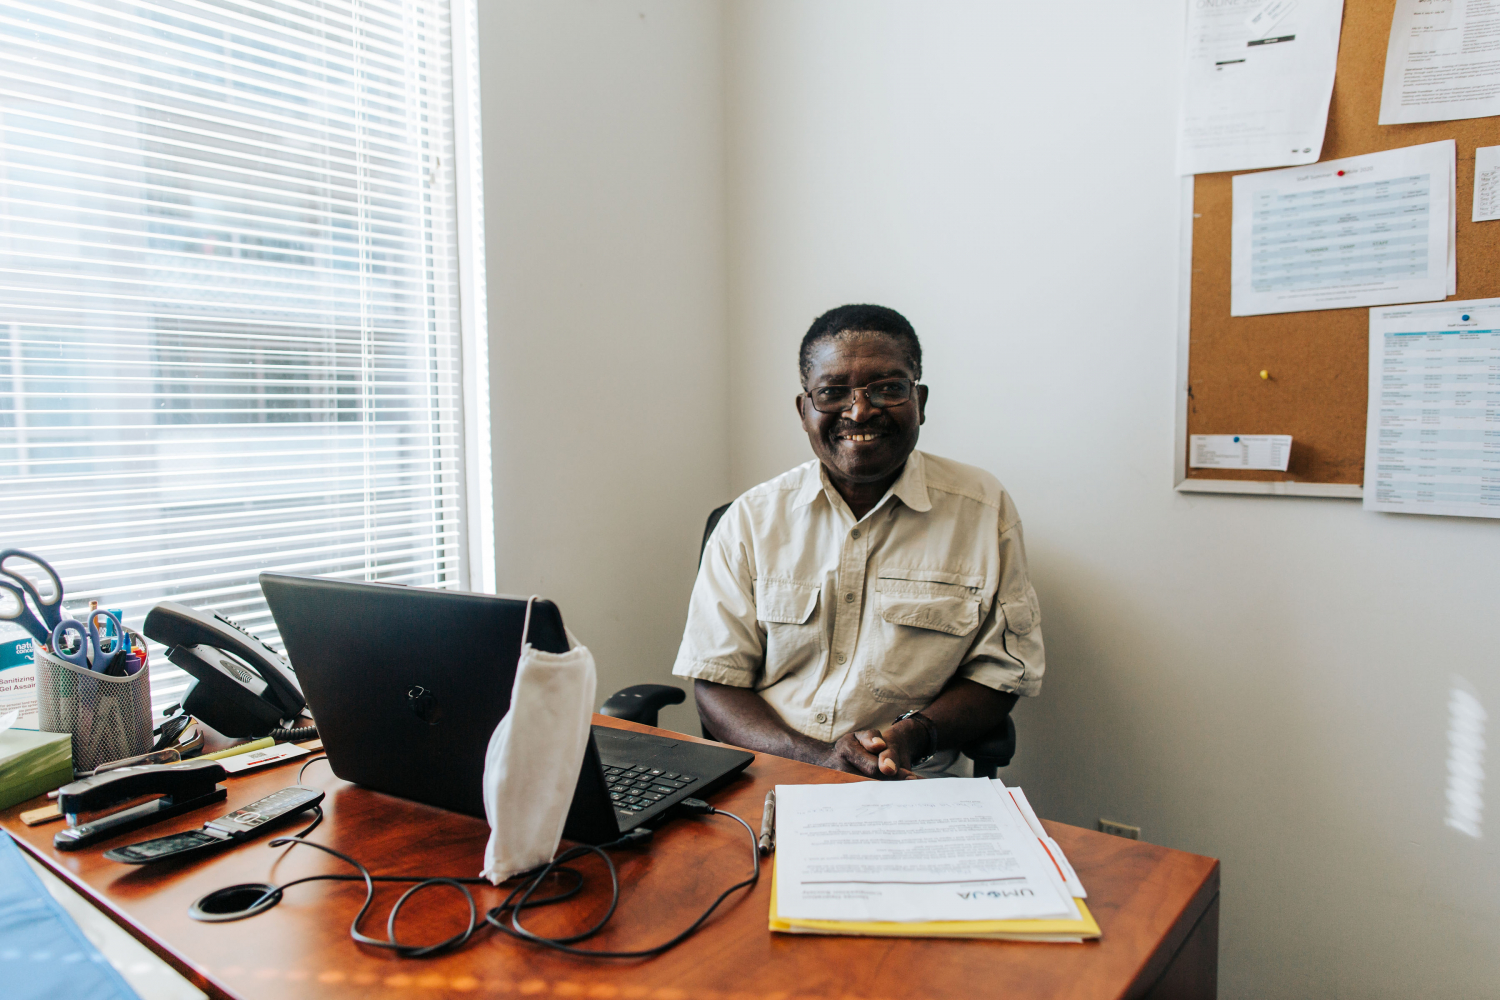 Amos Kambere is the executive director of Umoja, which serves newcomers in Surrey, BC.